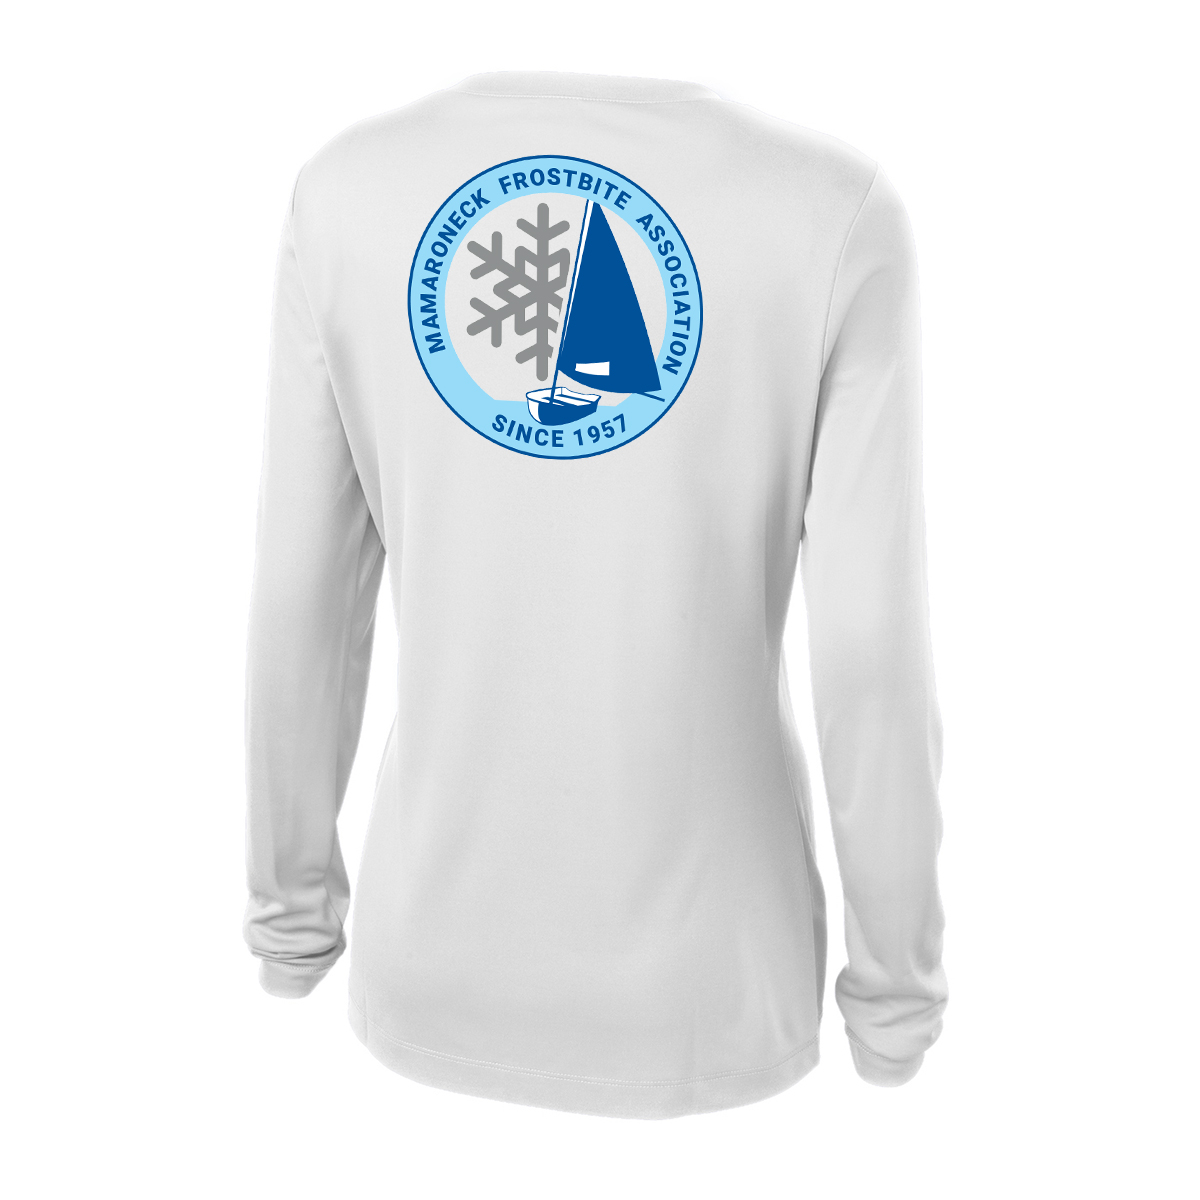 Mamaroneck Frostbite Association - Women's Long Sleeve Tech Tee